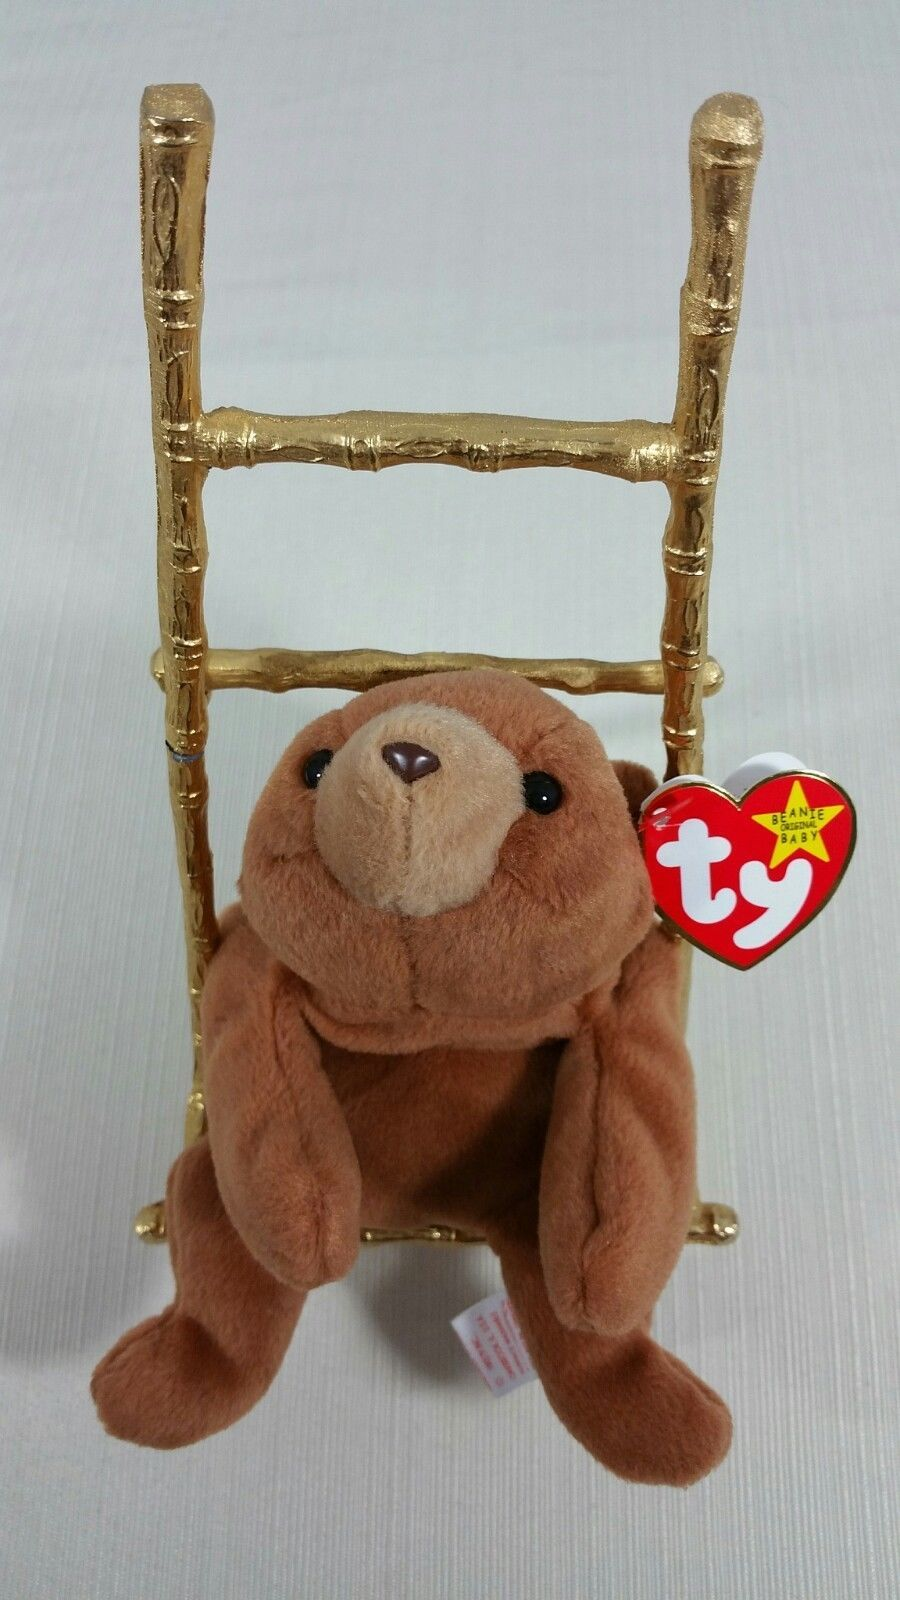 Retired Ty Beanie Babies Original Cubbie and 13 similar items. S l1600 03823d4f7183